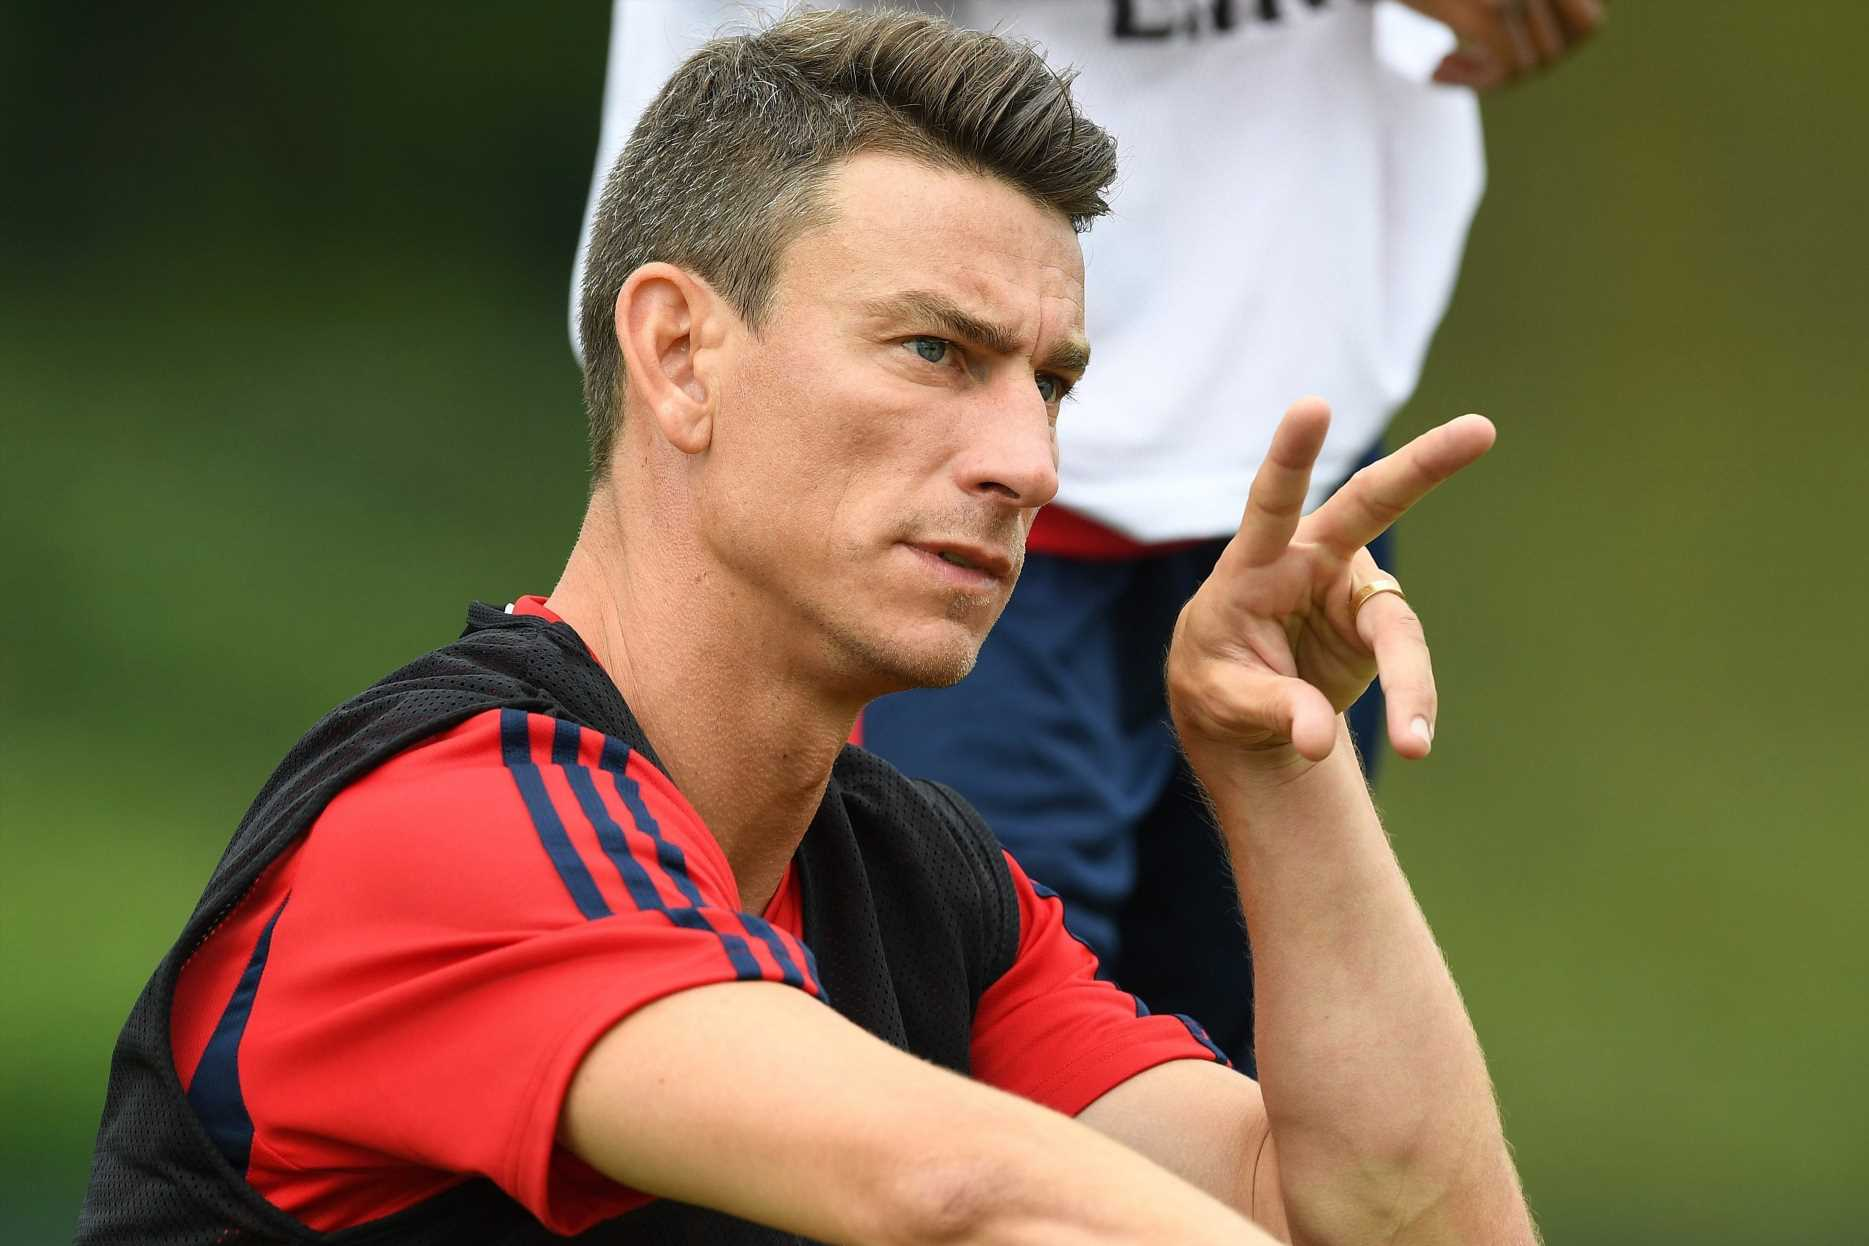 Koscielny could buy out the remainder of his £90,000-a-week contract to secure Arsenal exit – The Sun